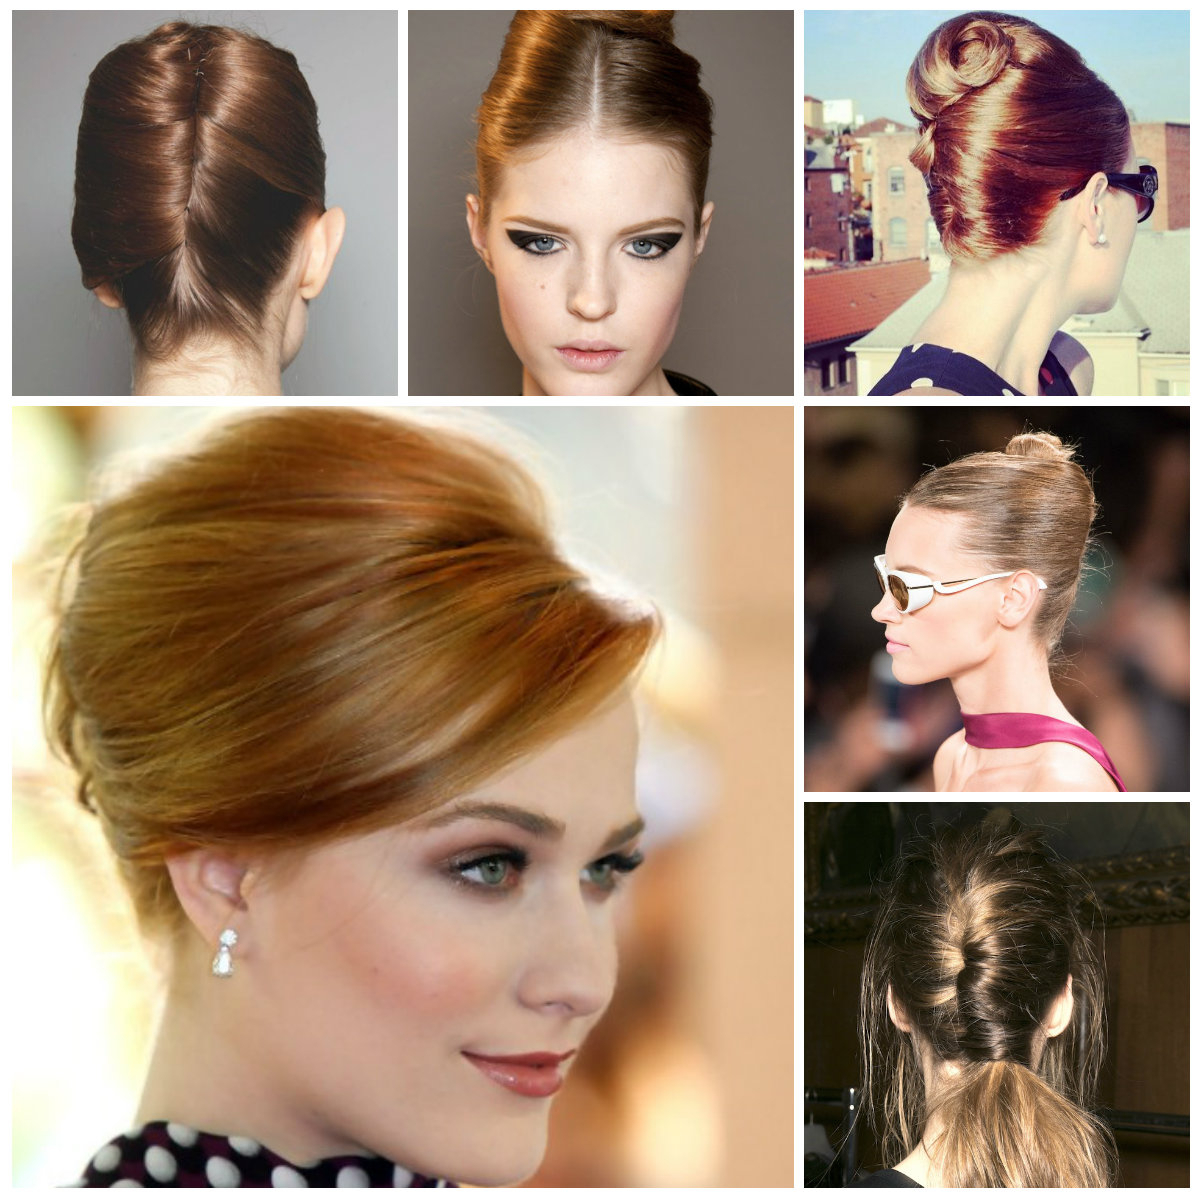 Fashionable Sleek French Knot Hairstyles With Curls In 2019 Trendy French Twist Hairstyles (View 14 of 20)